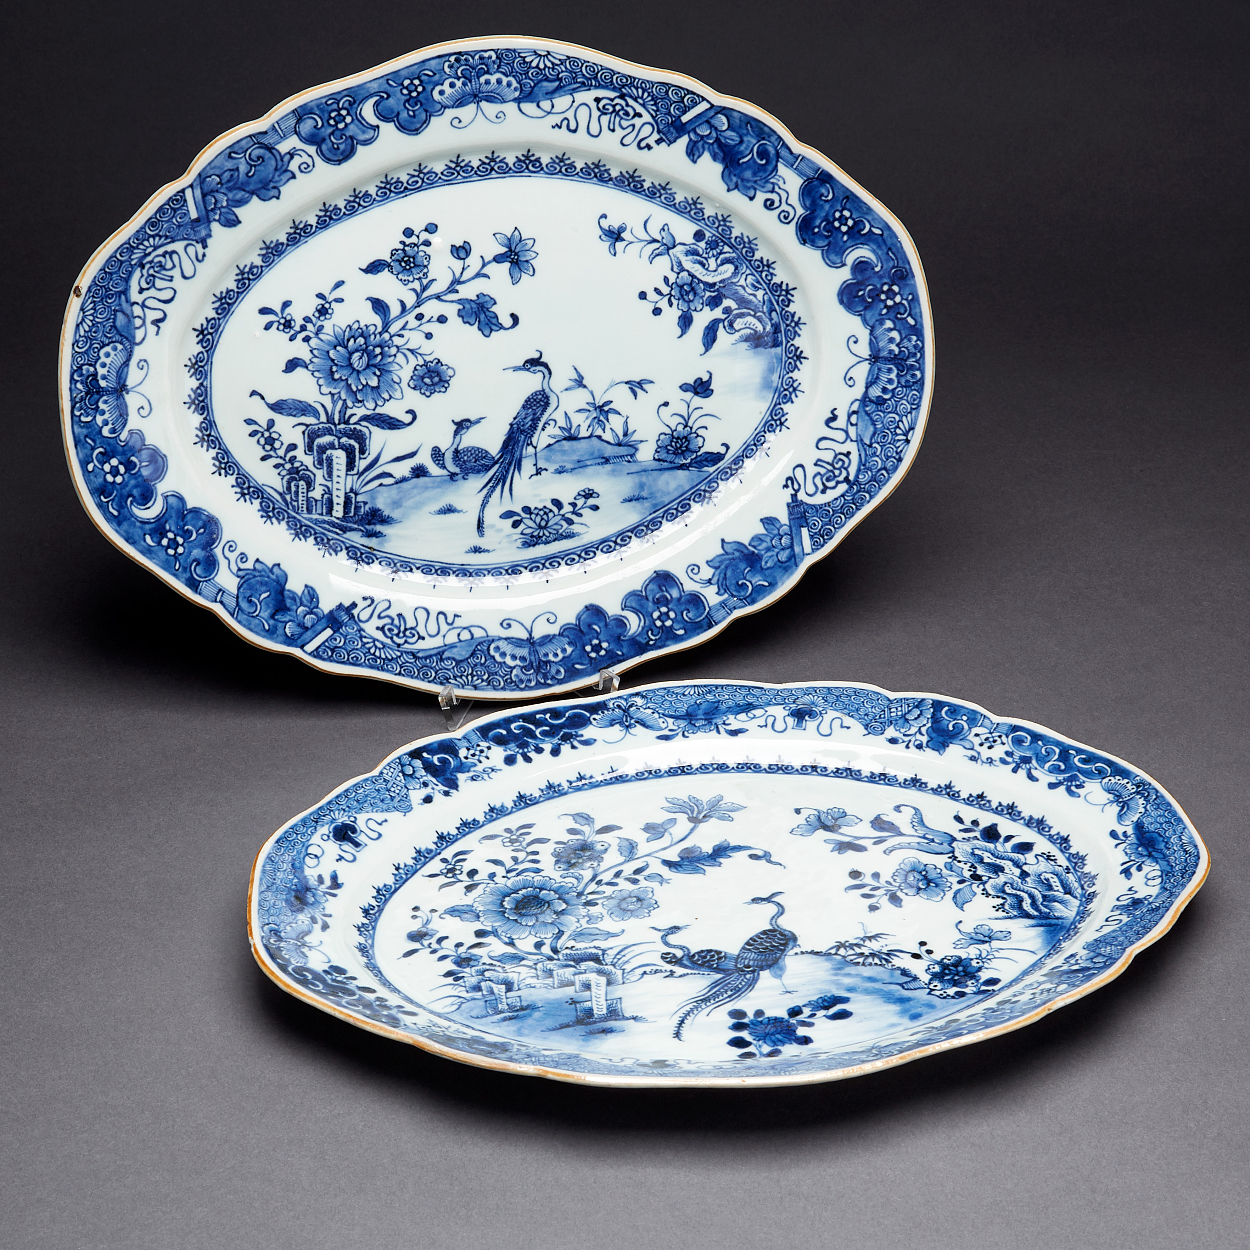 A Pair of Blue and White Ovoid Dishes